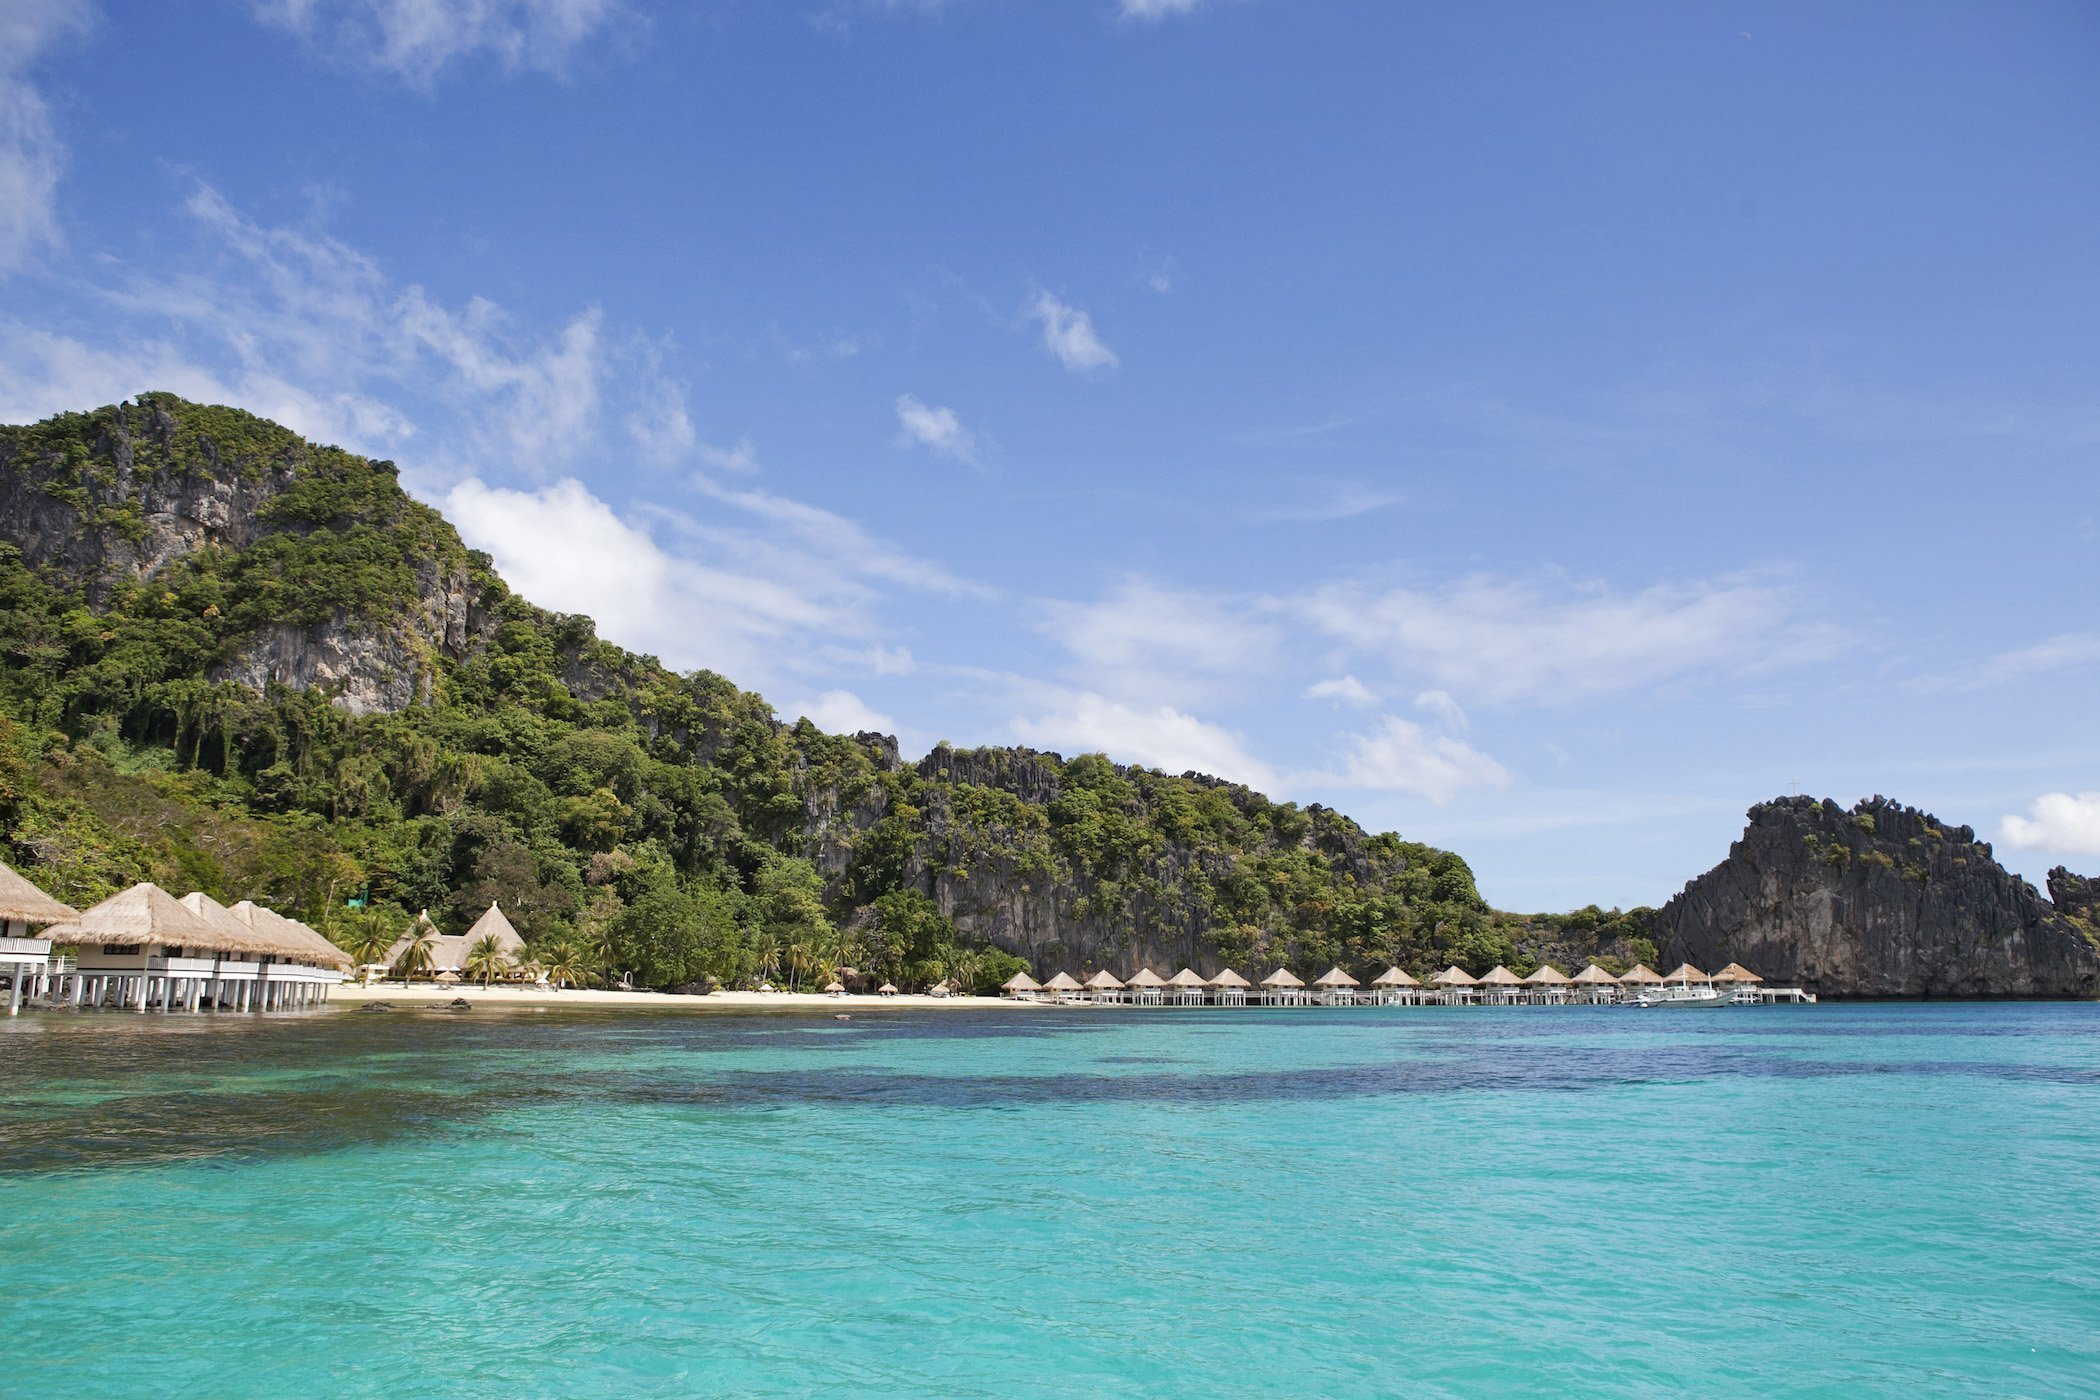 Spettacolare mare turchese a Apuilt Island Palawan